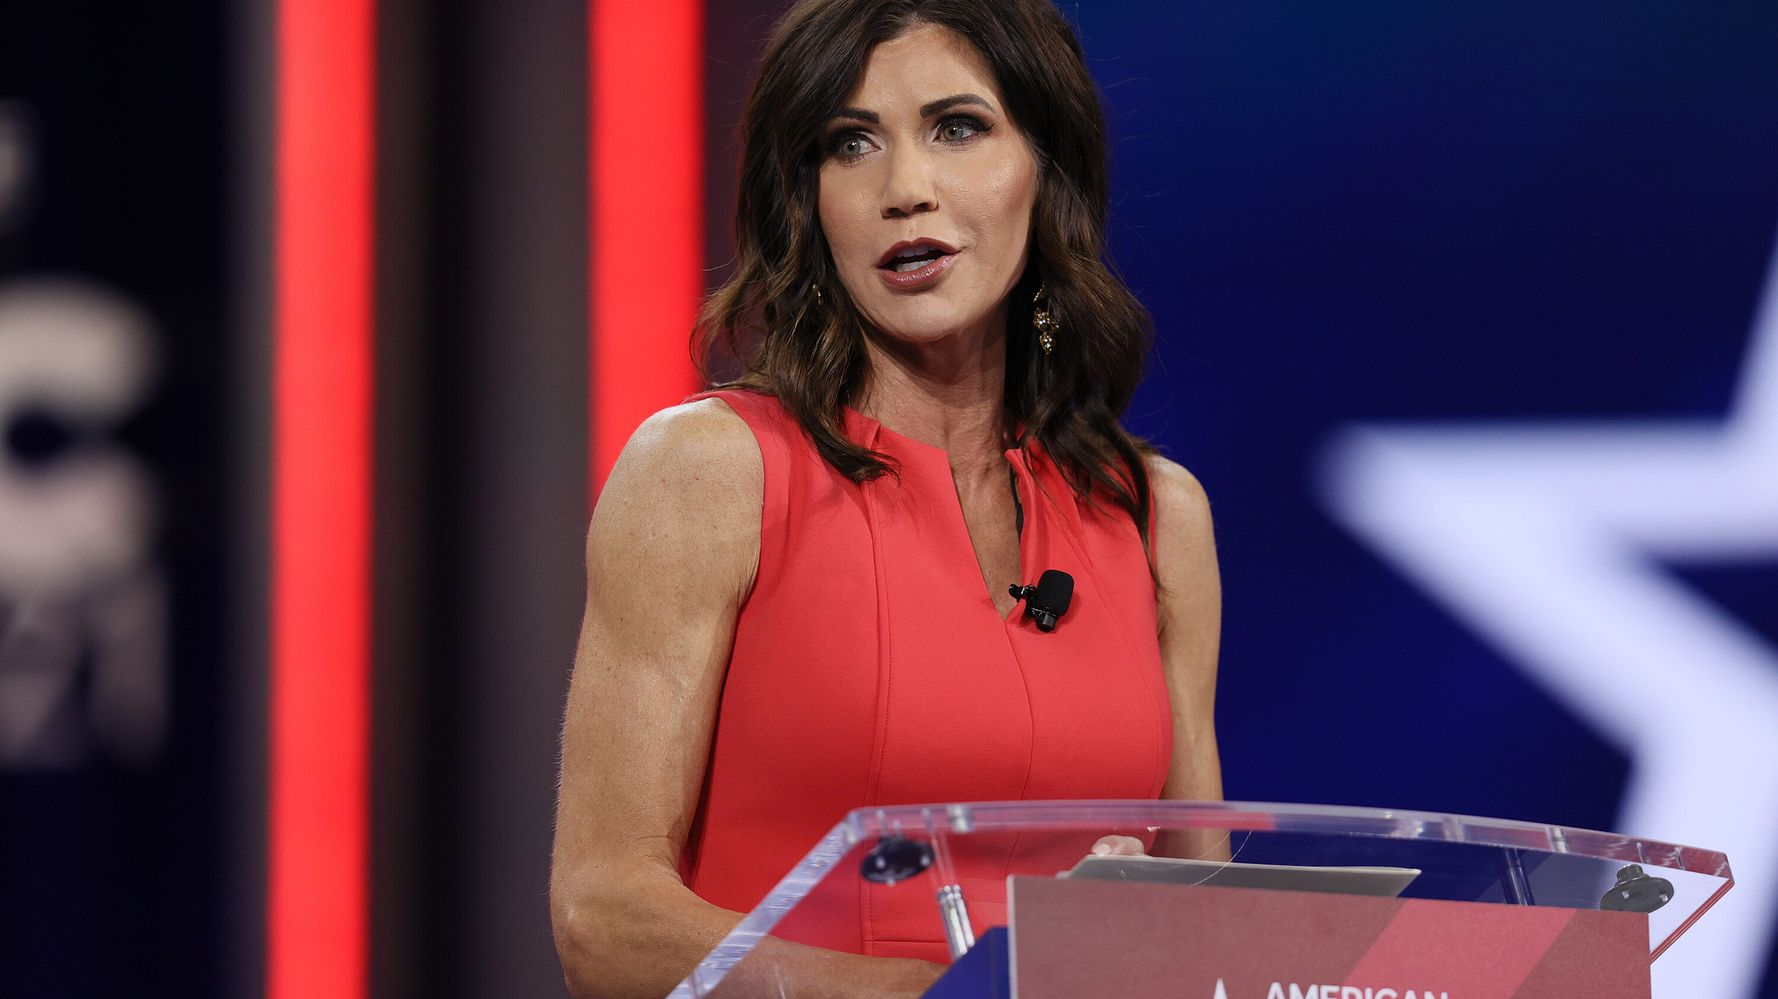 Kristi Noem To Sue Biden Administration After Fireworks Denied At Mount Rushmore